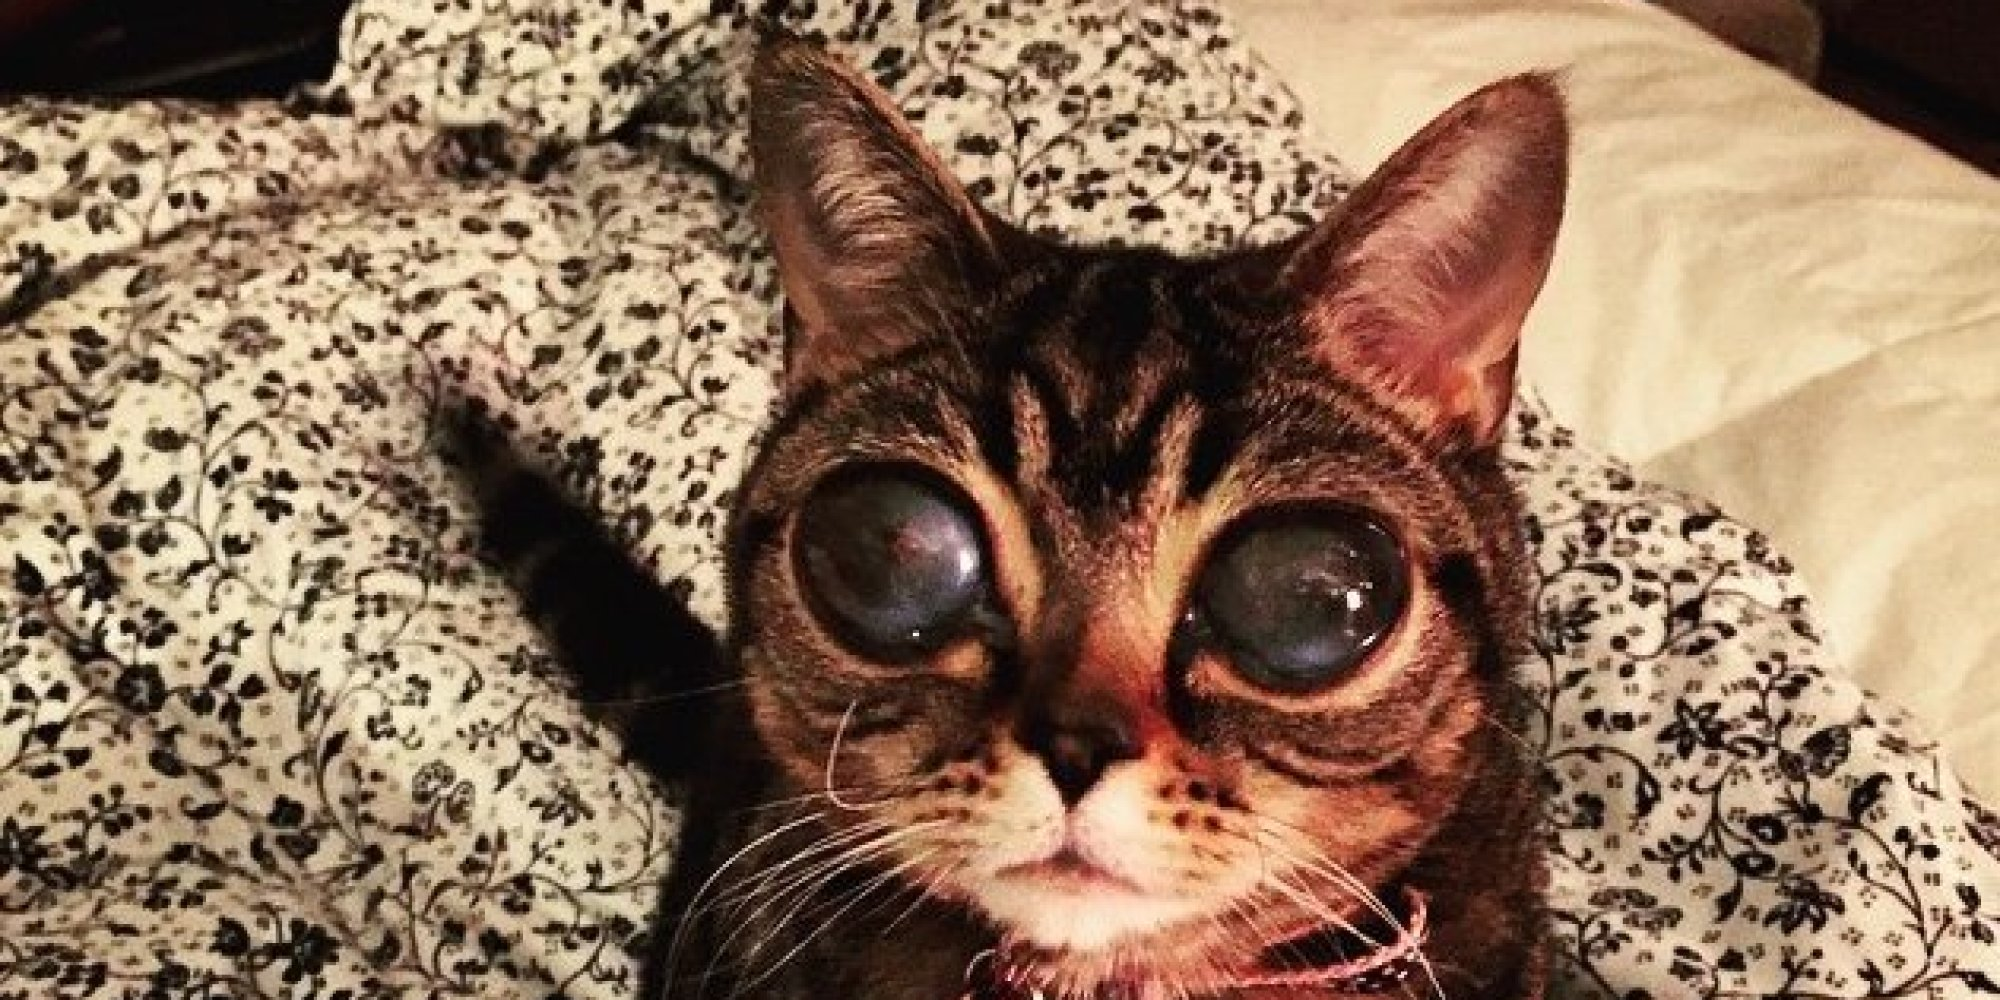 Meet Matilda The Cat That Looks Like An Alien And Has